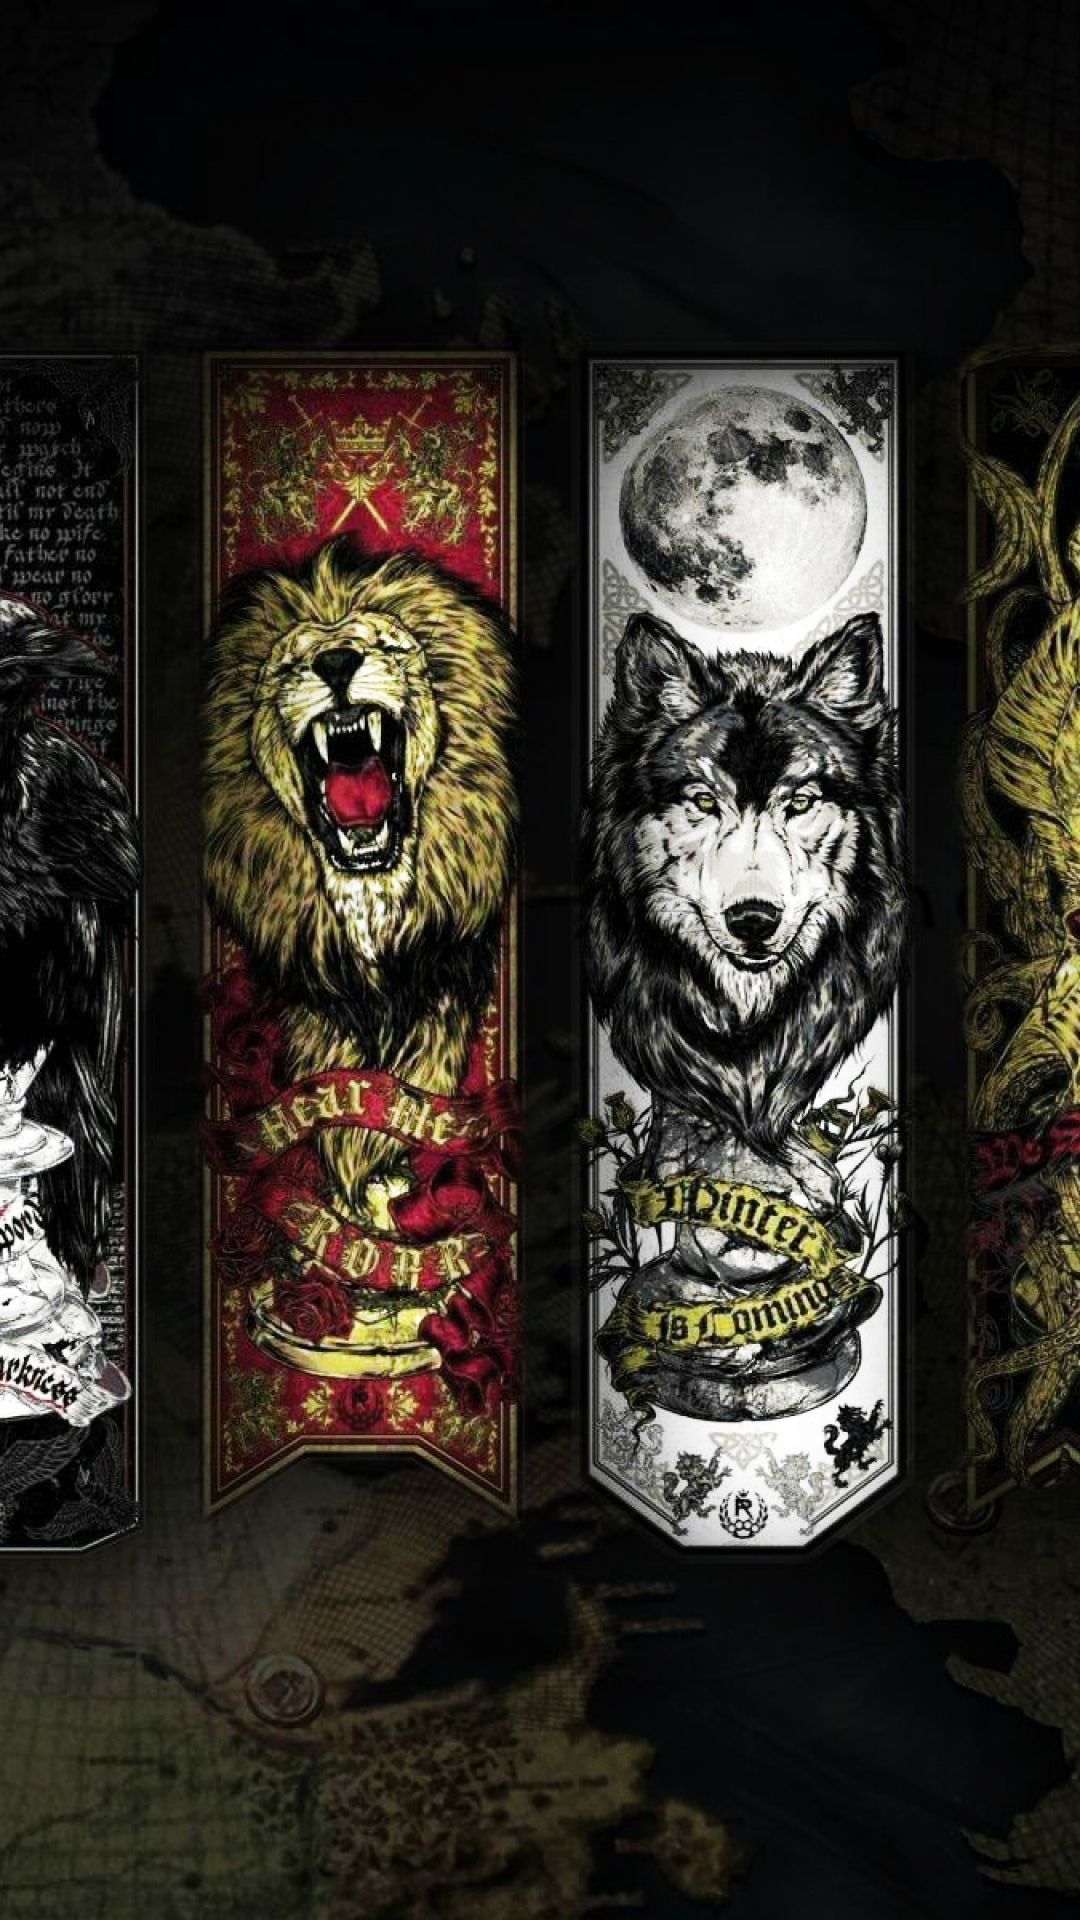 Game Of Thrones Lannister Stark House Wolf Lion Android Wallpaper 1080x1920